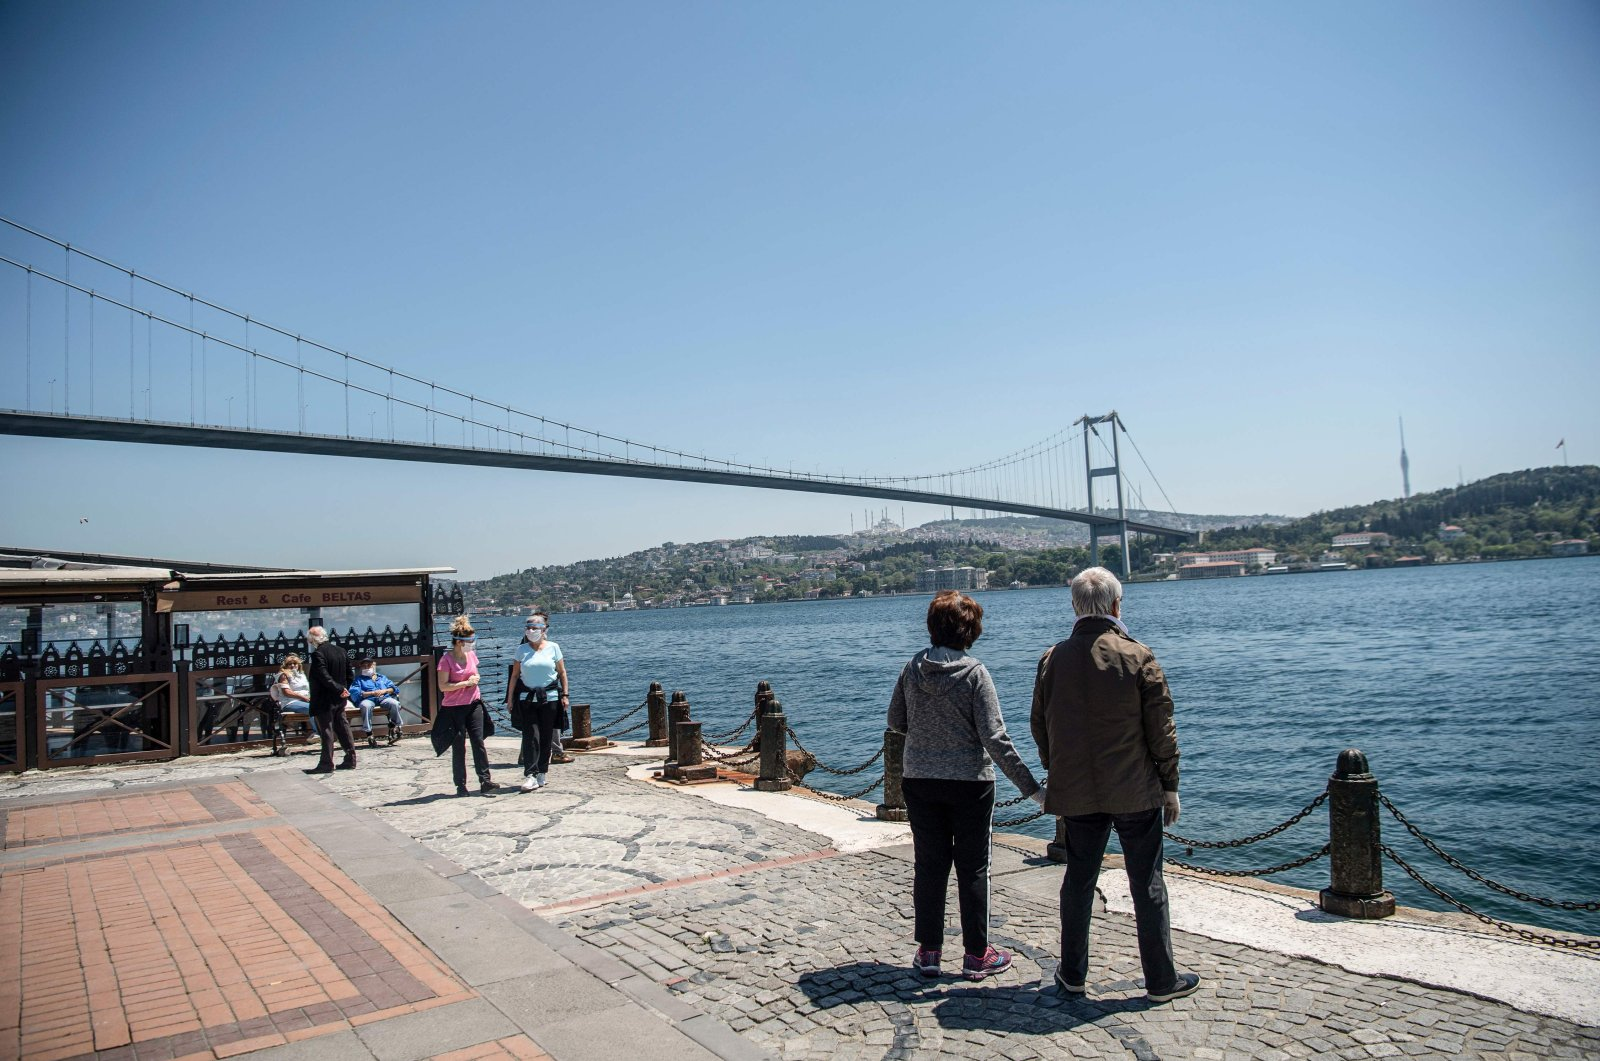 An elderly couple wearing protective face masks looks out toward the July 15 Martyrs' Bridge in the Ortaköy neighborhood of Istanbul, Turkey, May 10, 2020. (AFP Photo)